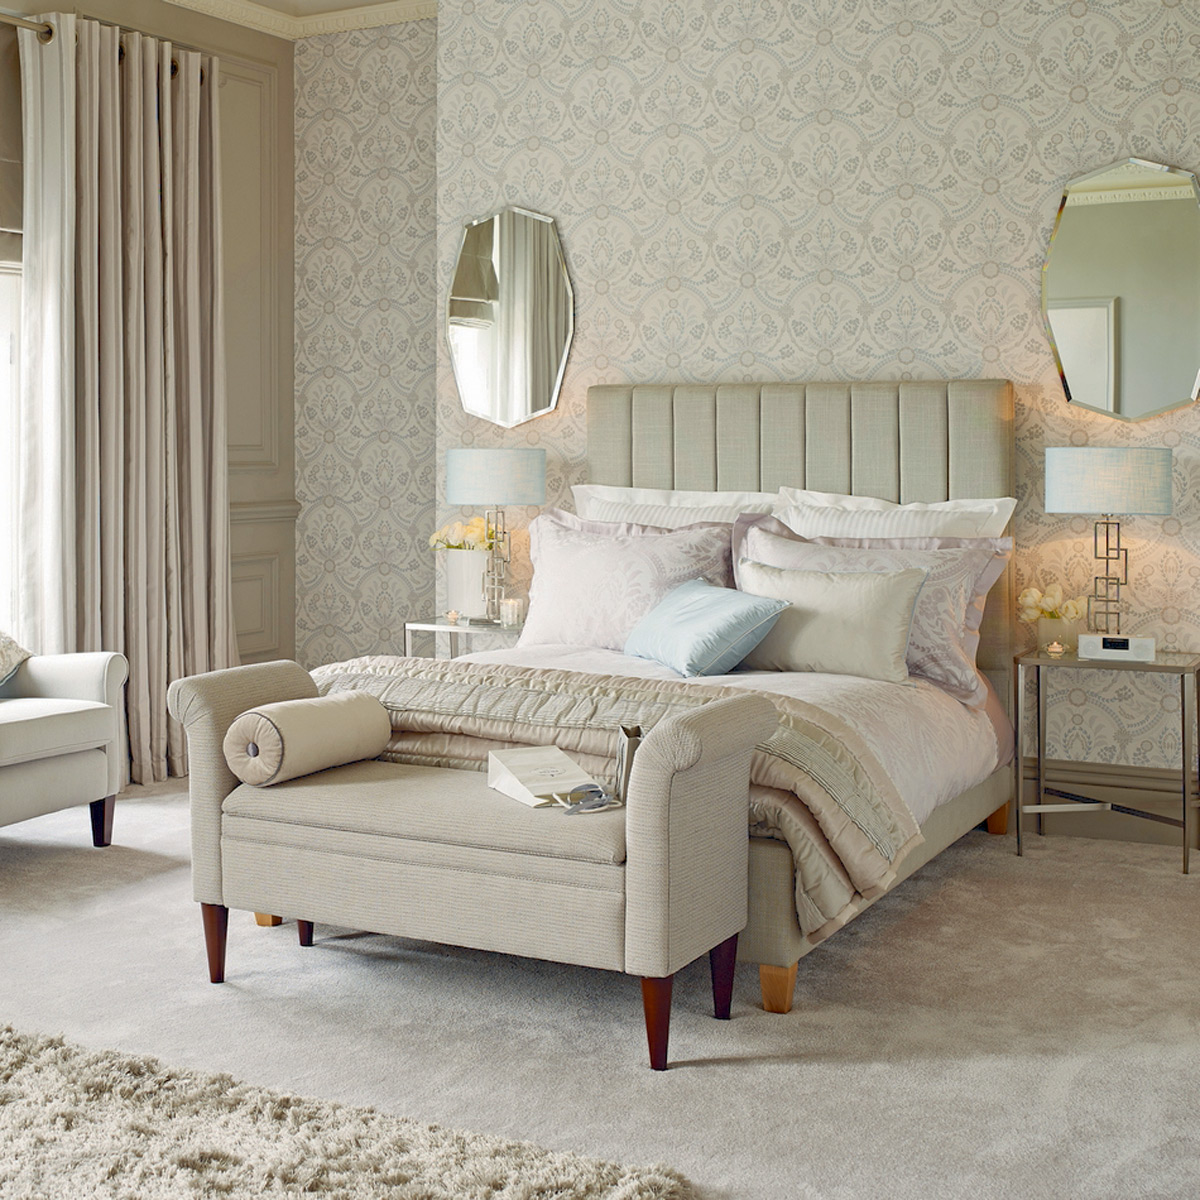 wheat laura ashley bedding with olive headboard on wheat floor matched with wheat wallpaper for bedroom decor ideas